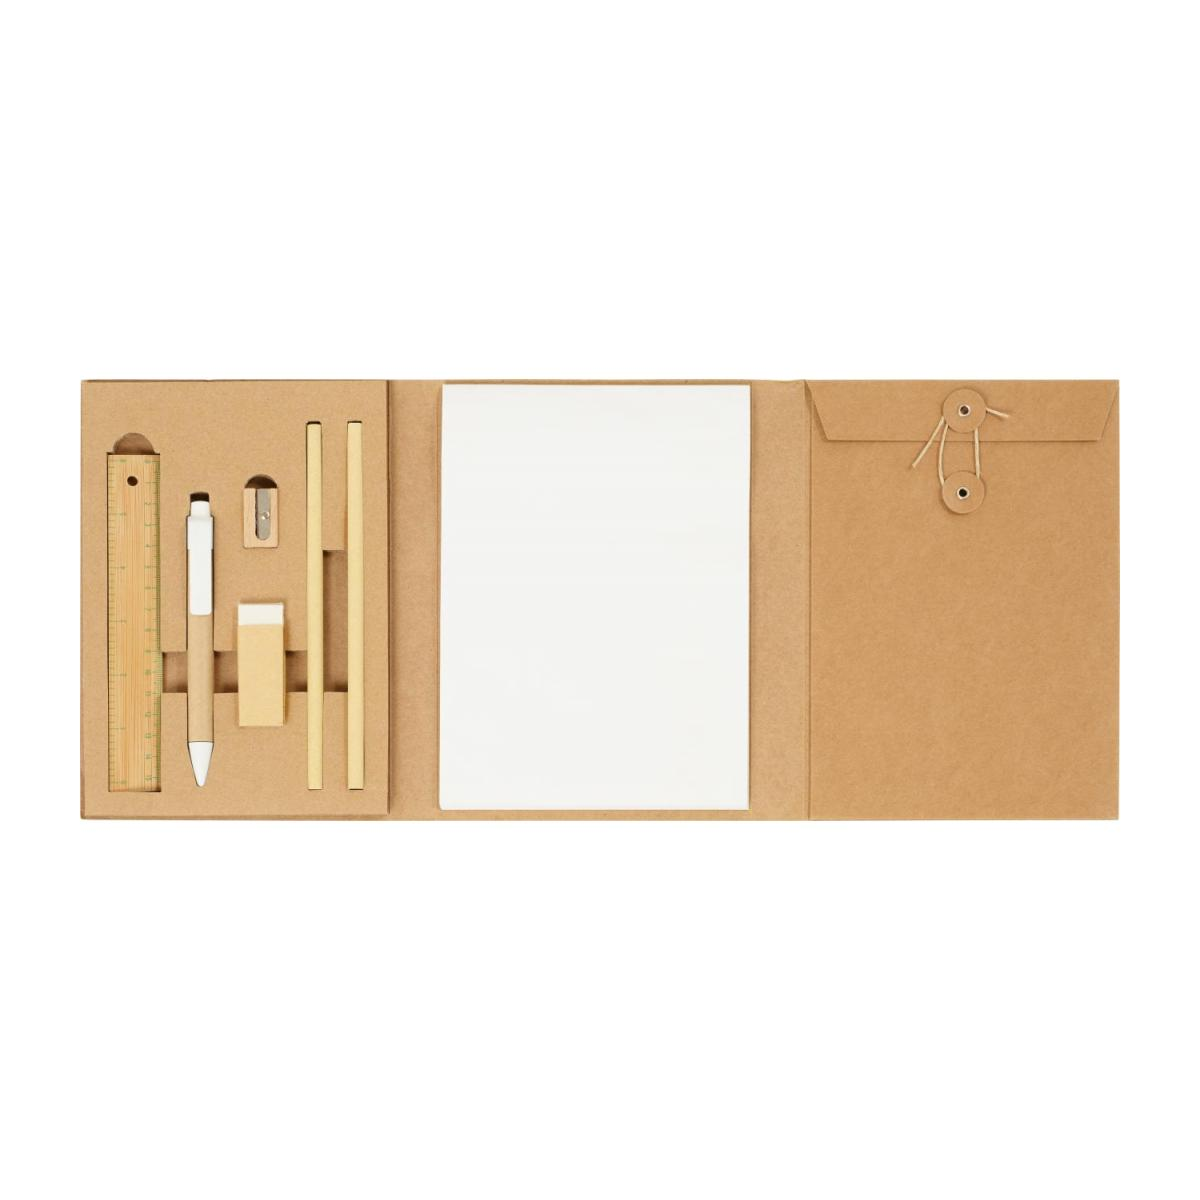 Kit de escritorio - Kraft n°1